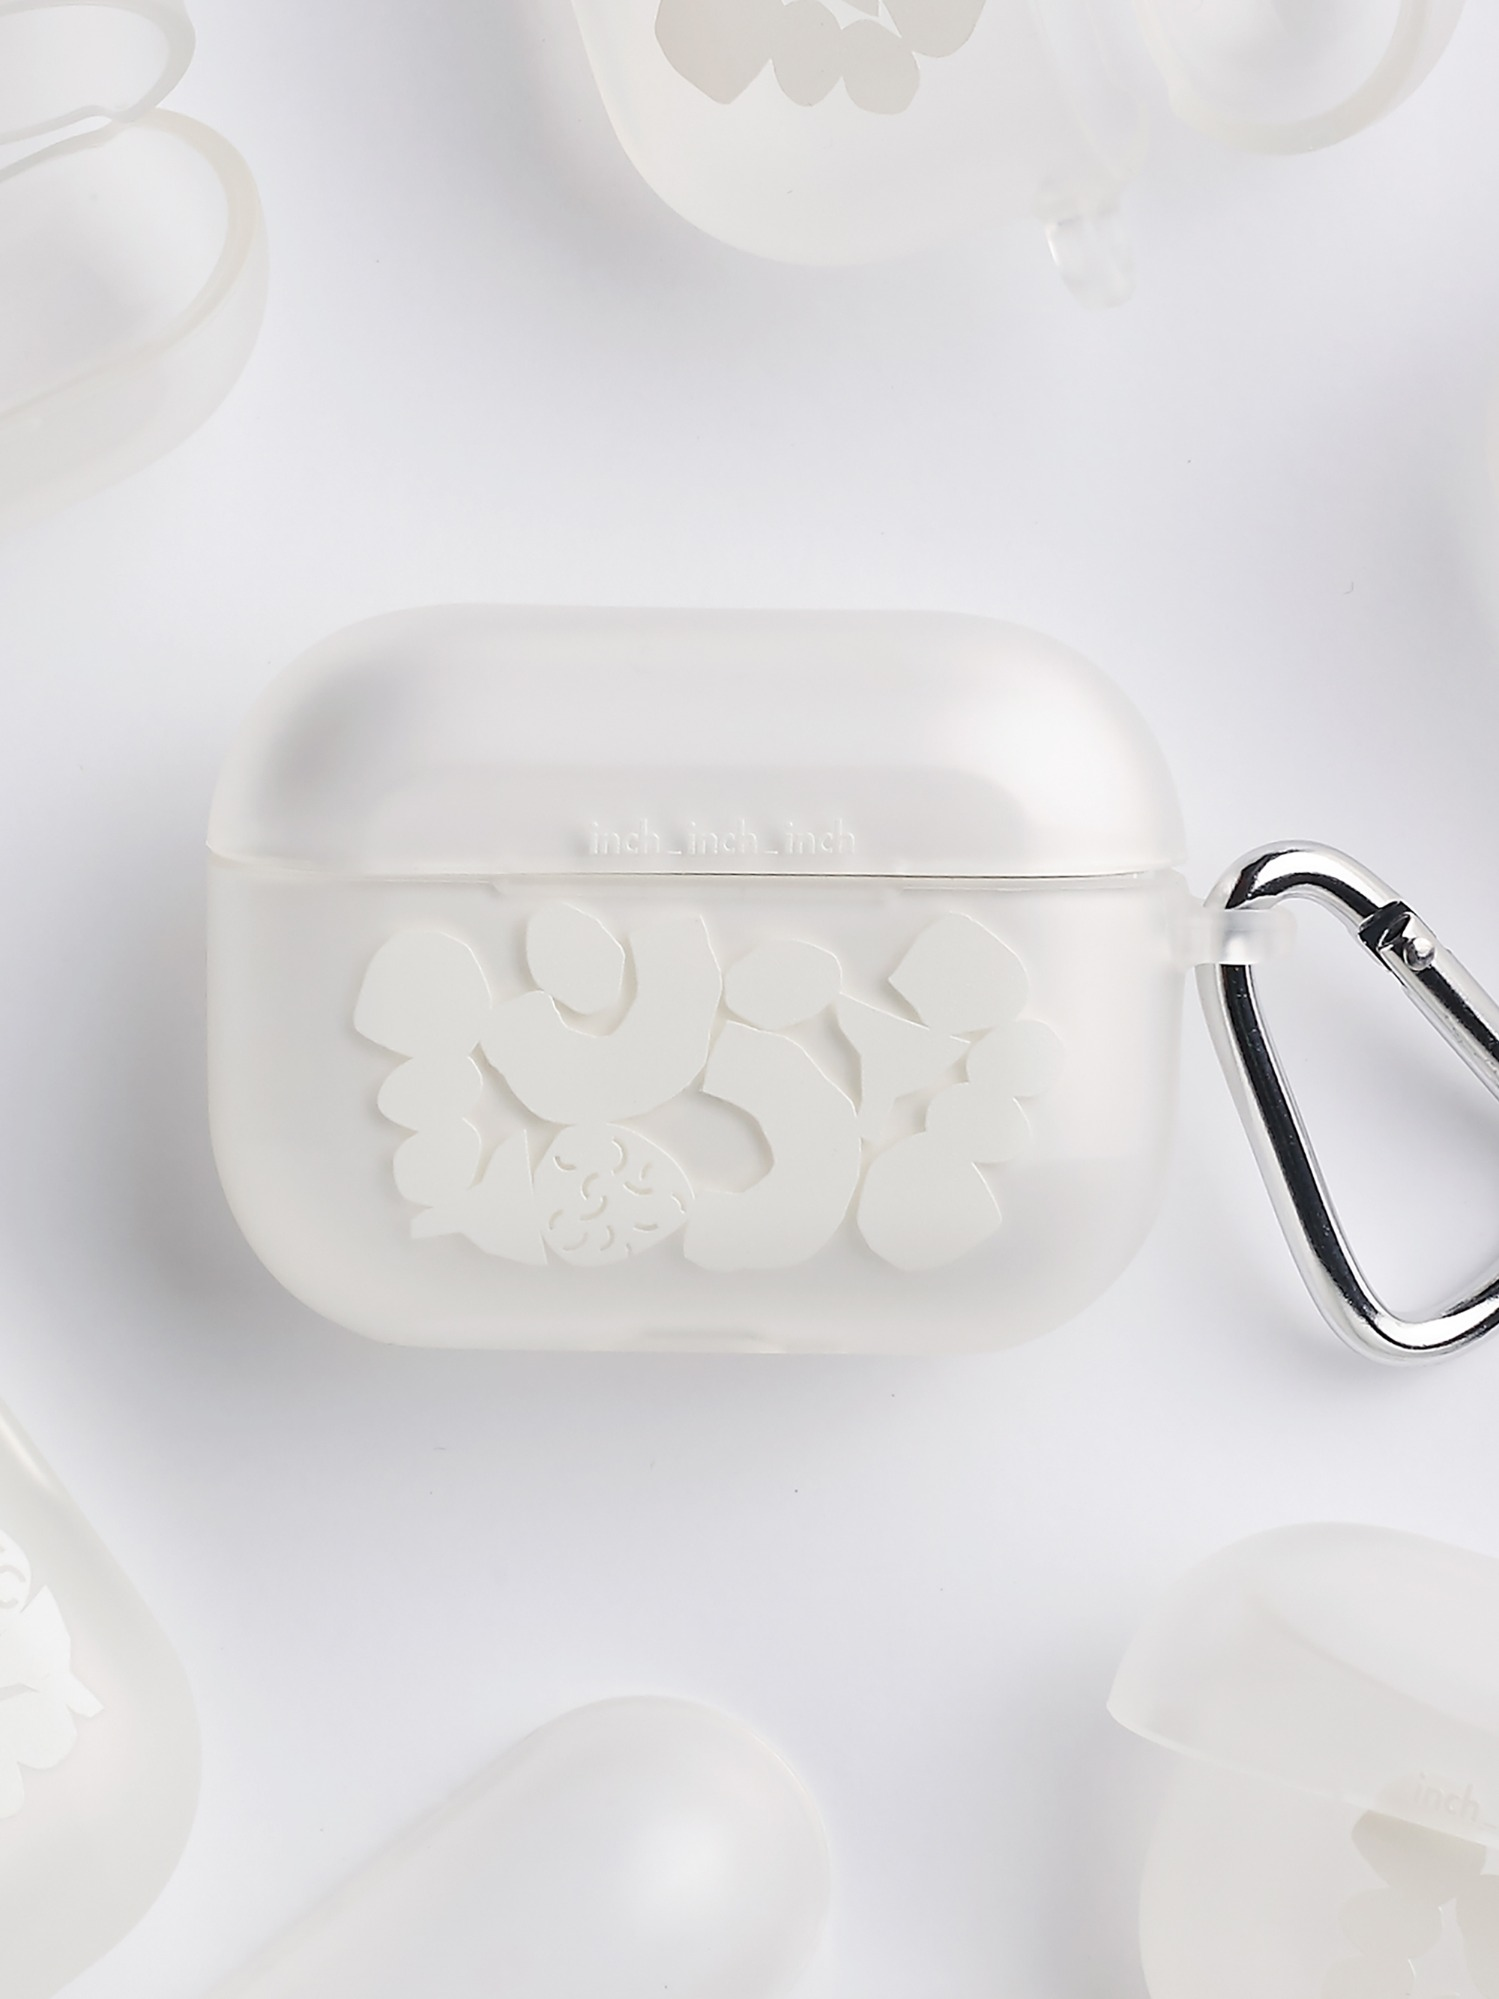 [30 Limited] White Blocks Airpods Pro Case (반투명) (키링 포함)